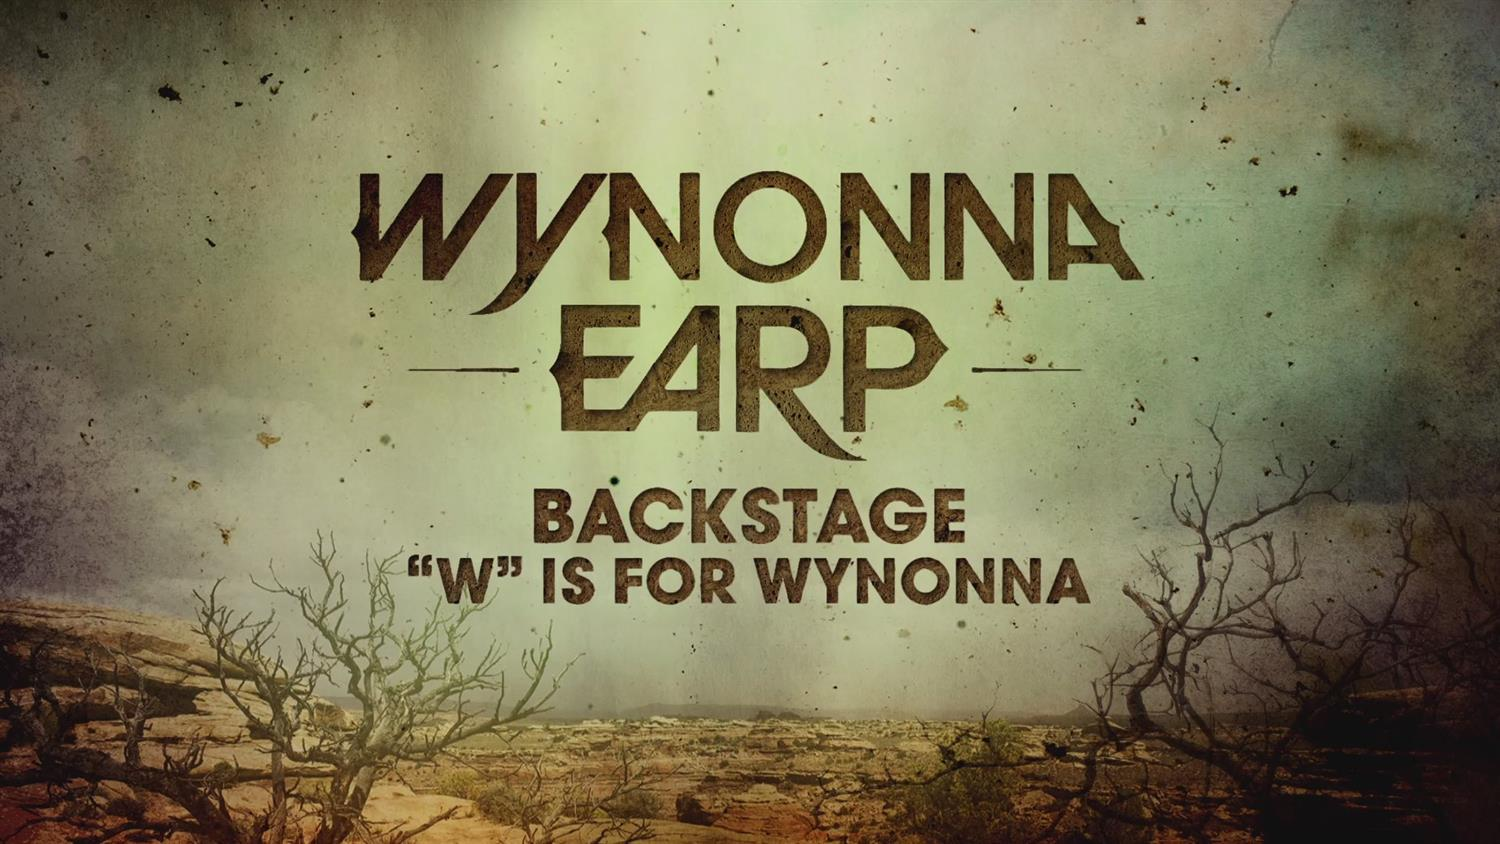 Wynonna Earp Backstage: W is for Wynonna